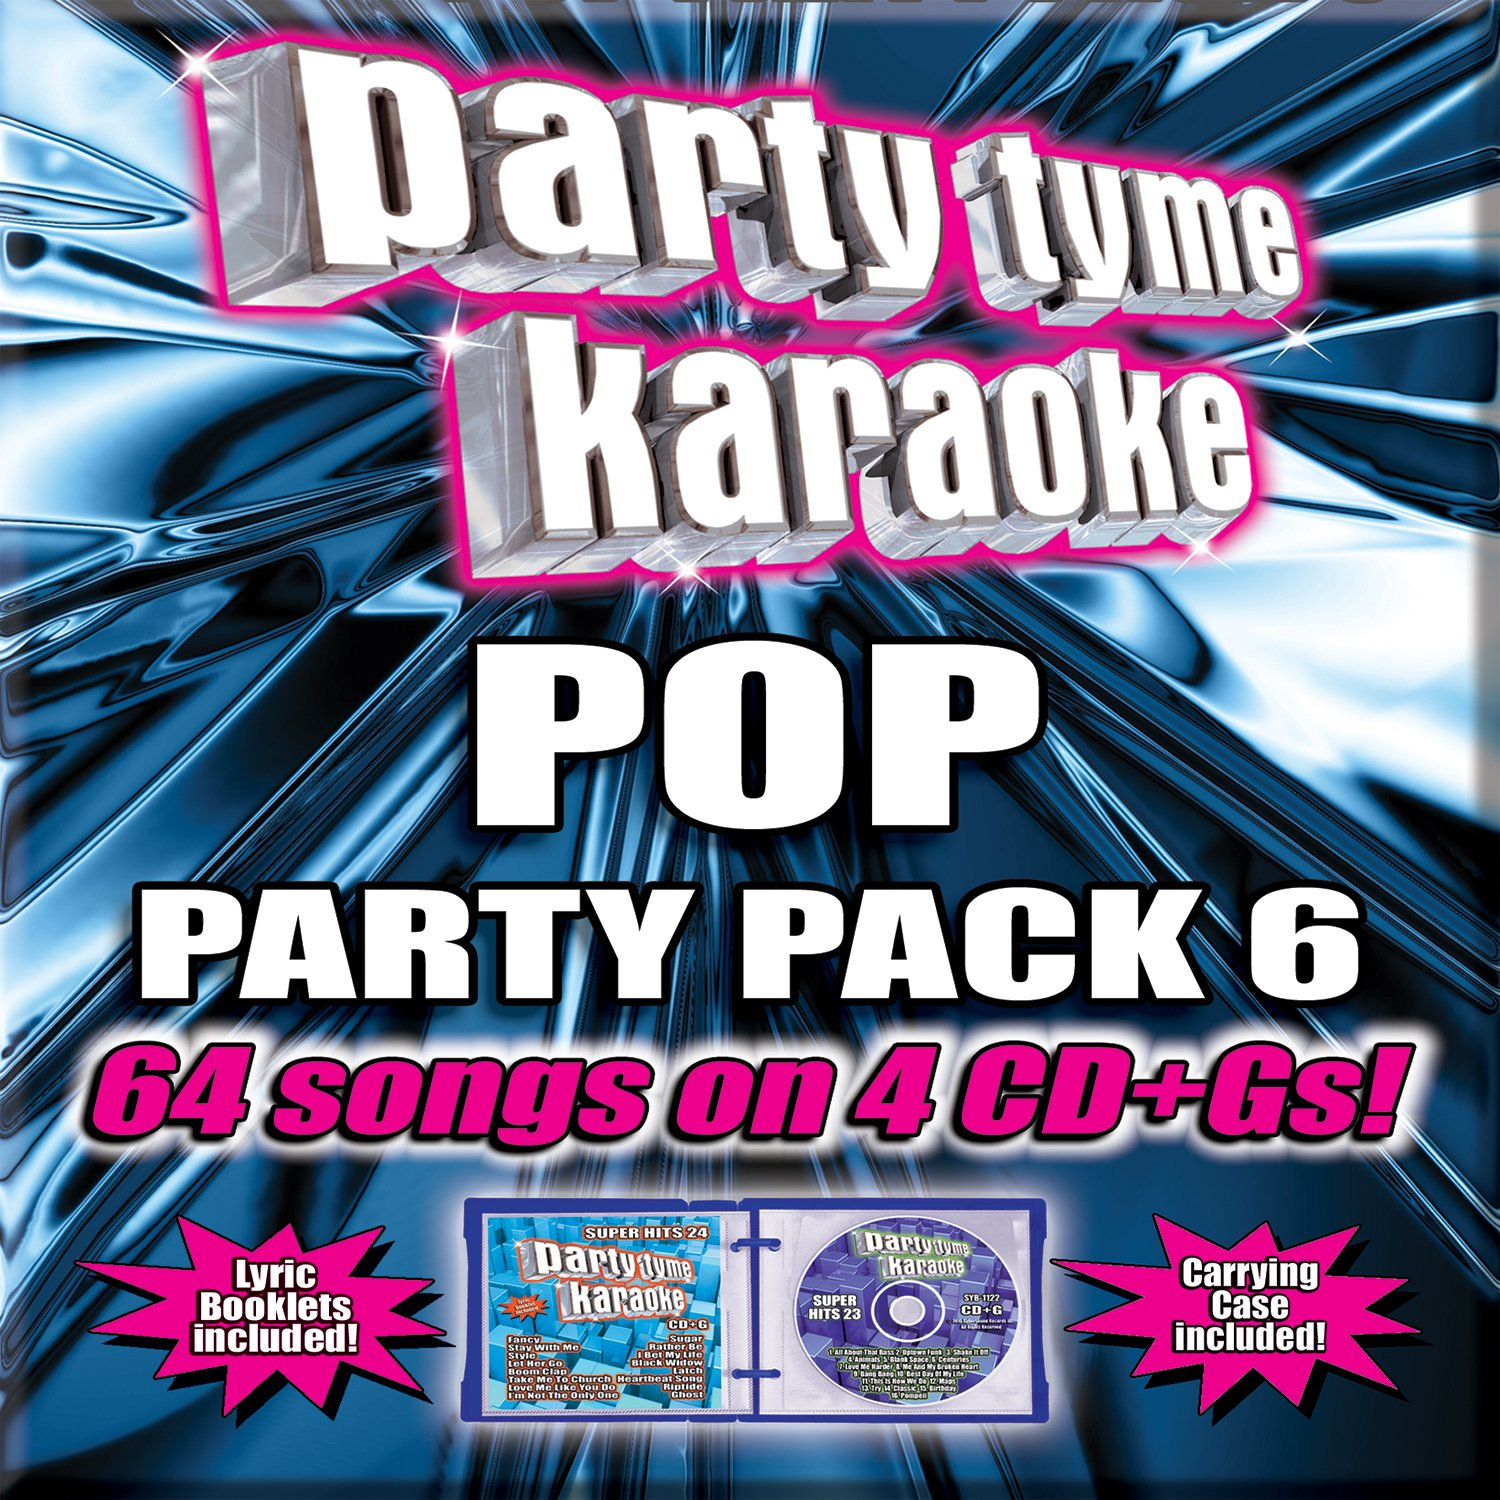 Party Tyme Karaoke - Pop Party Pack 6 by Sybersound